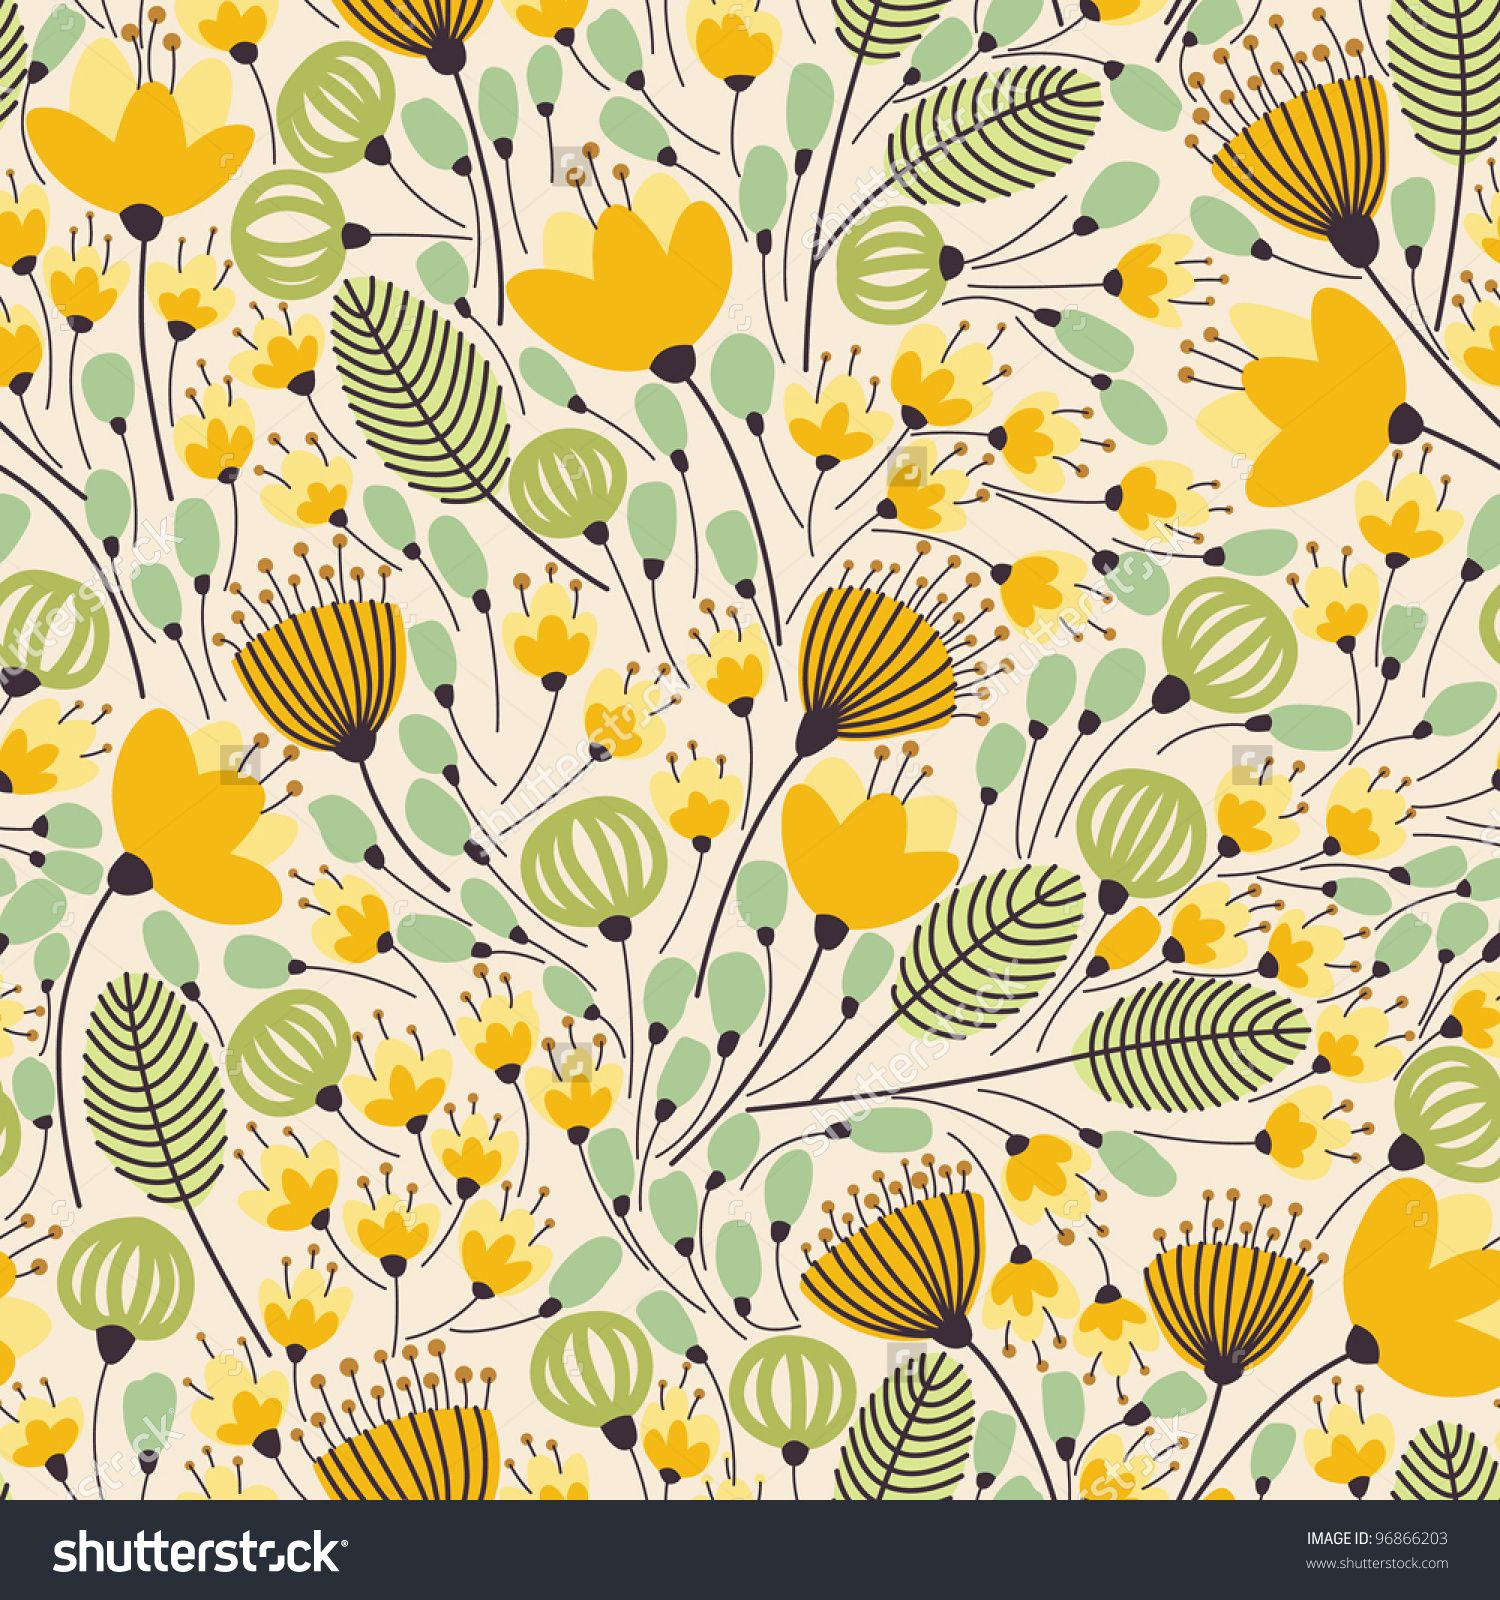 Elegant Seamless Pattern With Yellow Flowers, Vector